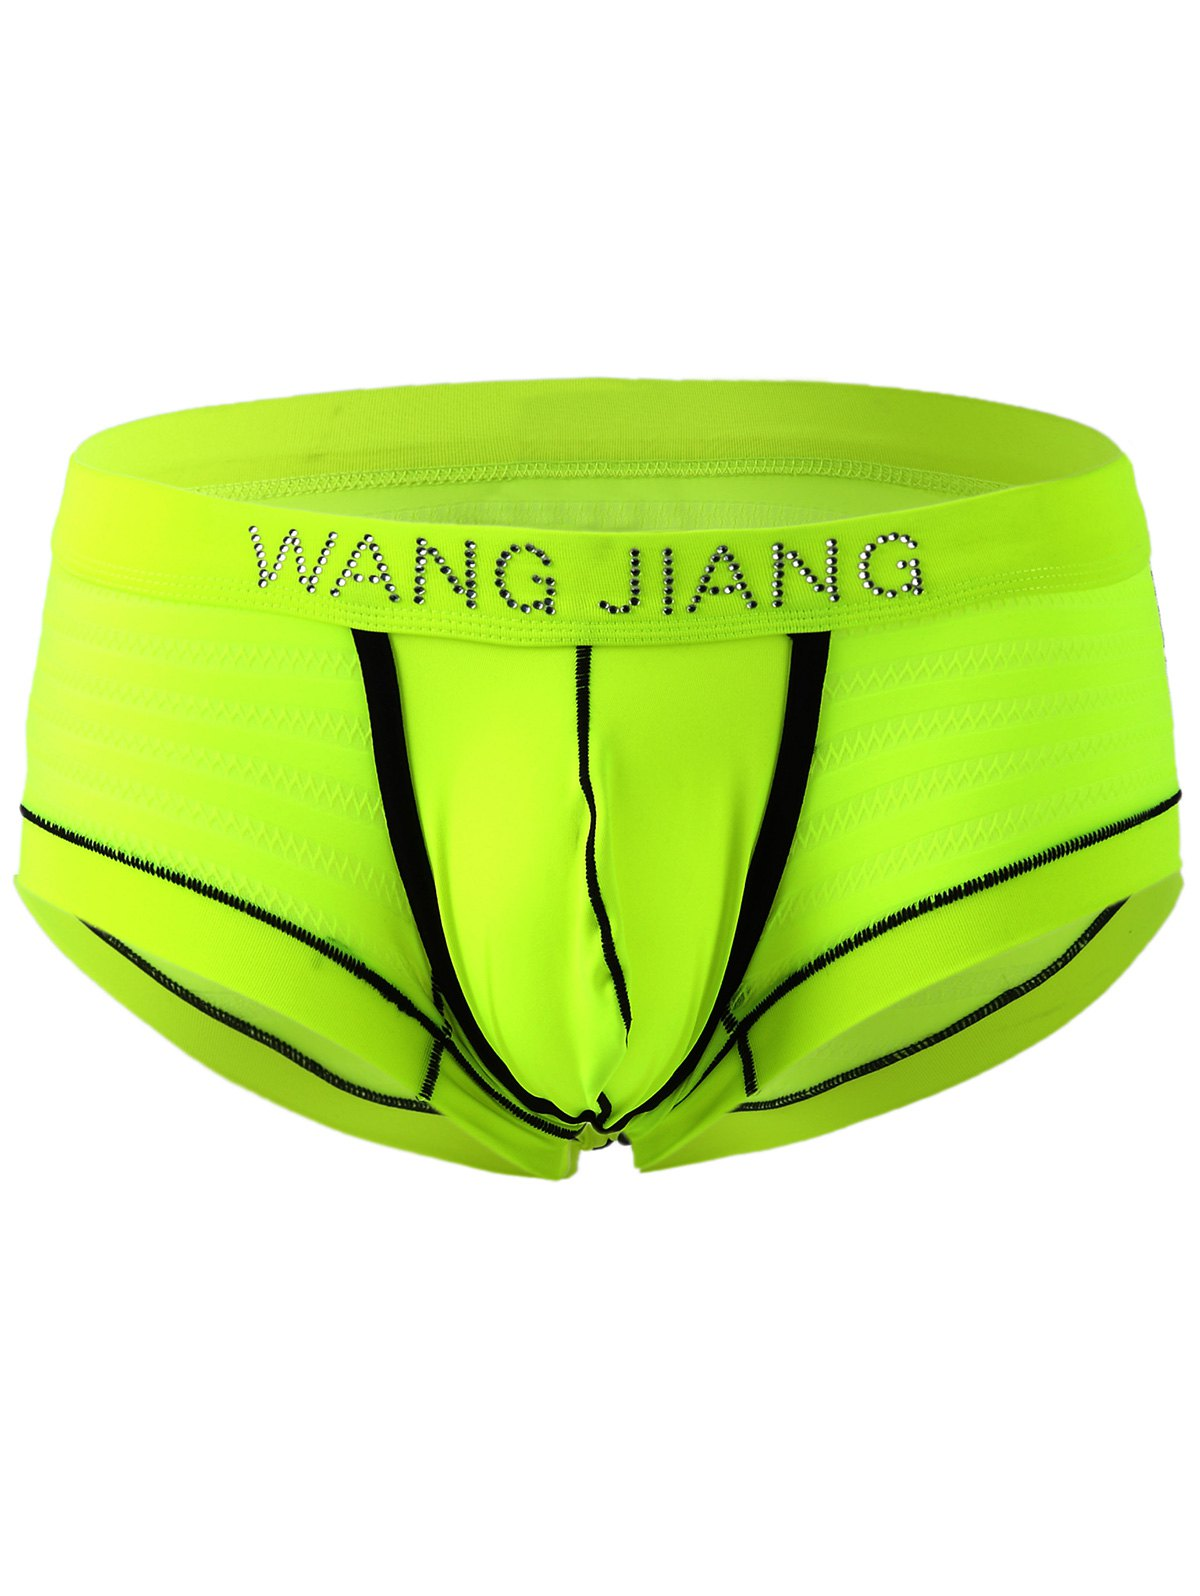 Elastic Waist U Pouch Men's Boxers - FLUORESCENT YELLOW XL